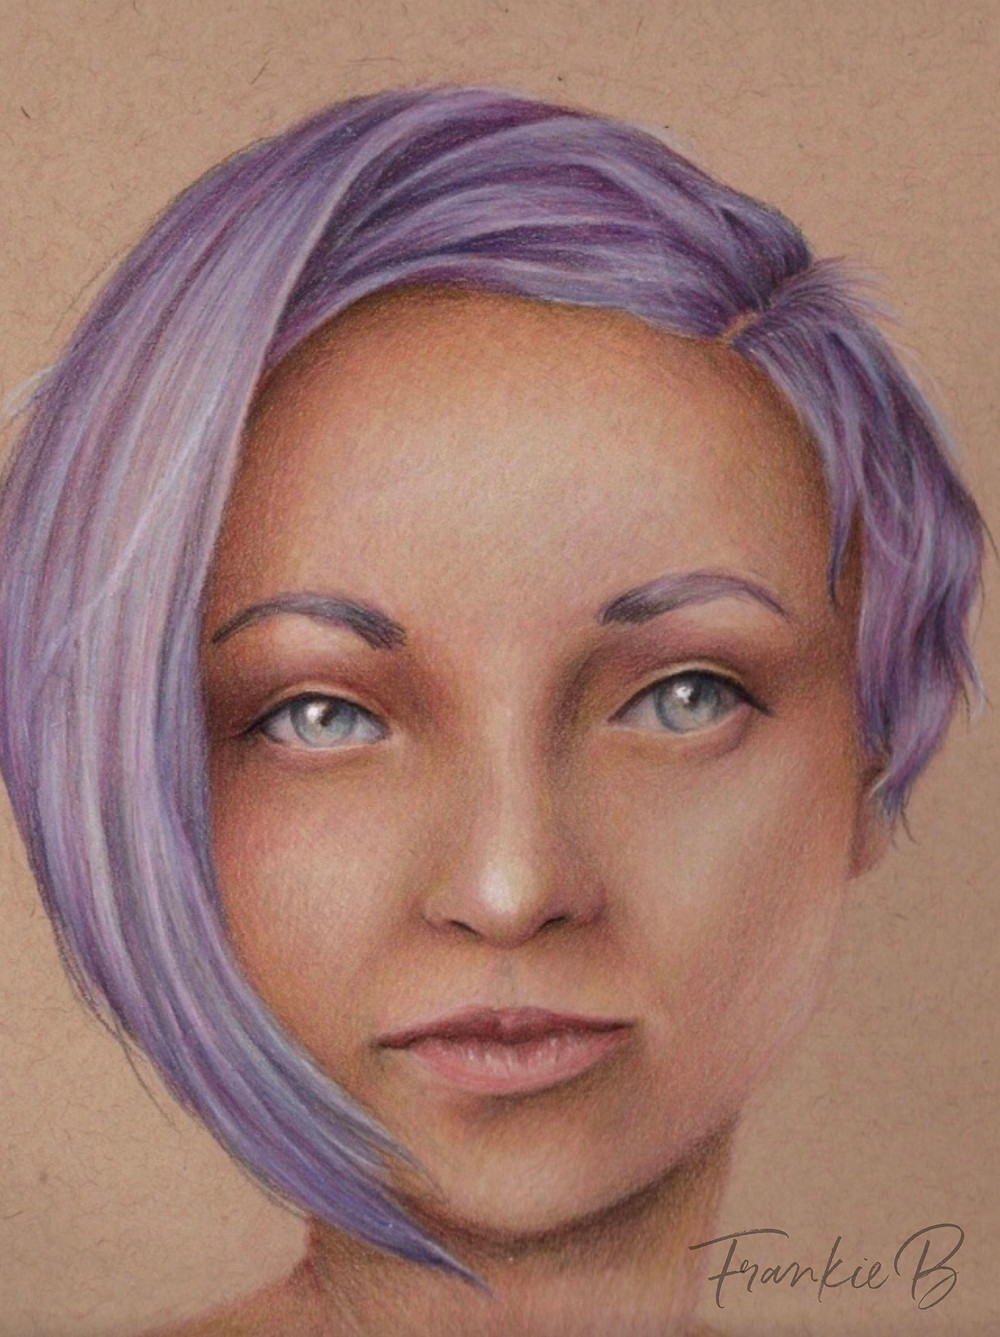 Practicing with a partner lead to improved colored pencil techniques and outcomes | Colored Pencil Practice | Practice Partners #coloredpencil #adultcoloringpractice